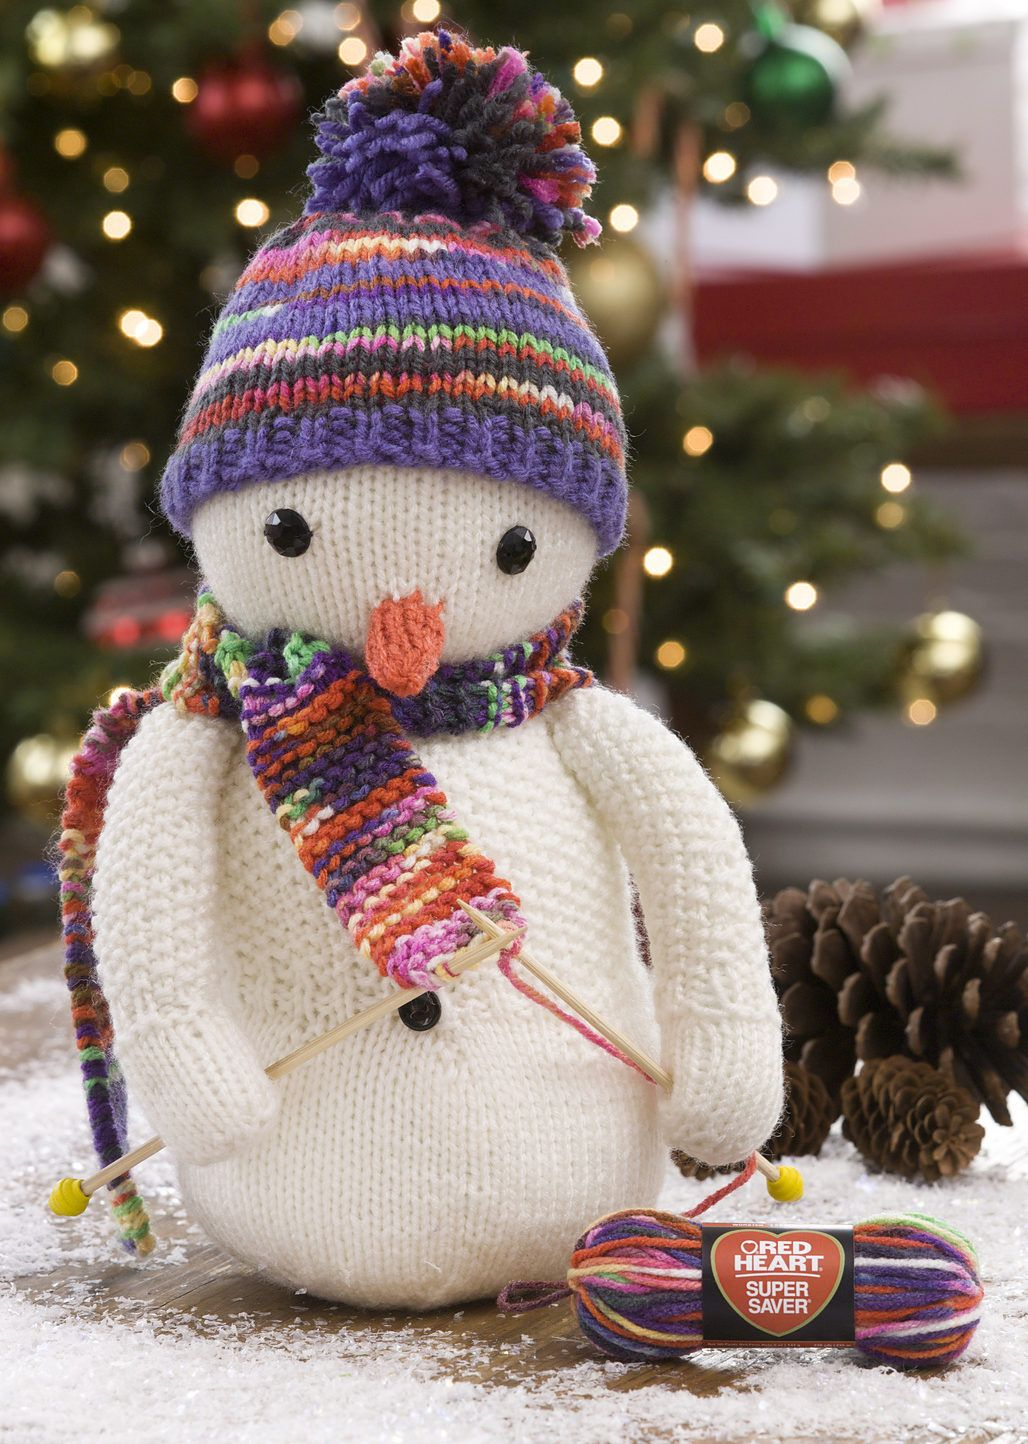 Free Knitting Pattern for Knitting Snowman - This snow knitter ...